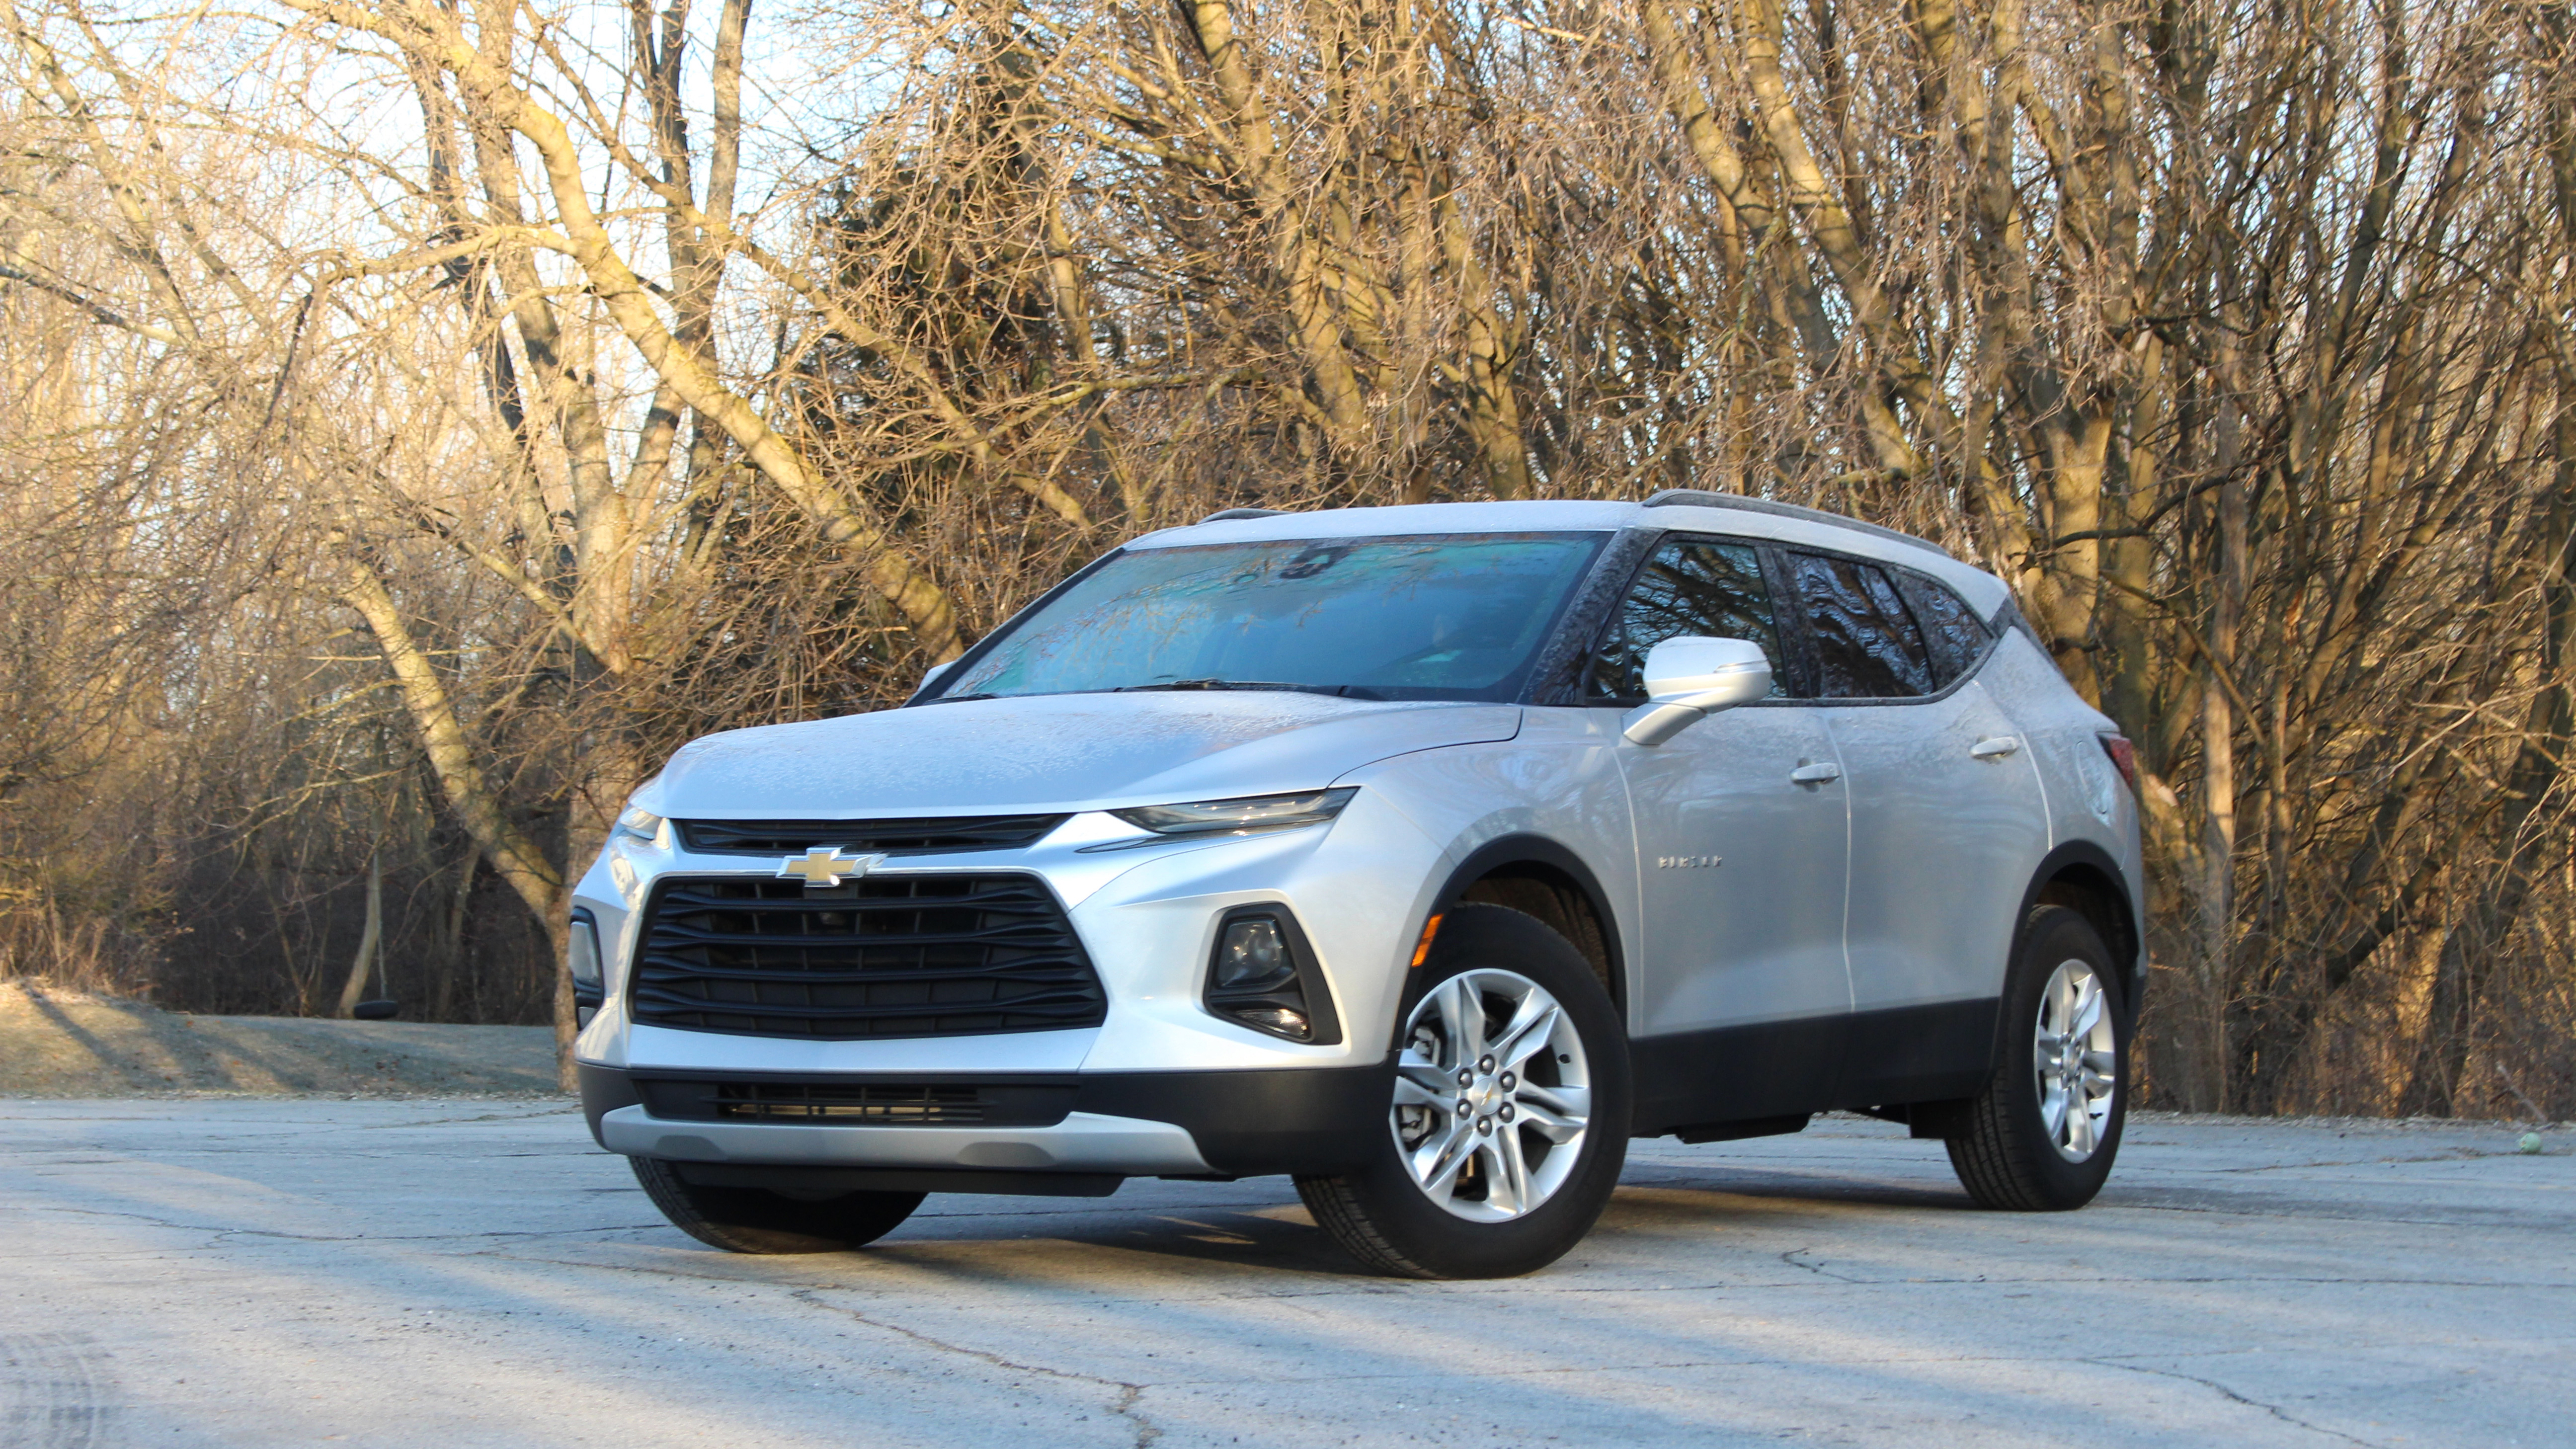 5 Chevy Blazer Review  Price, specs, features and photos